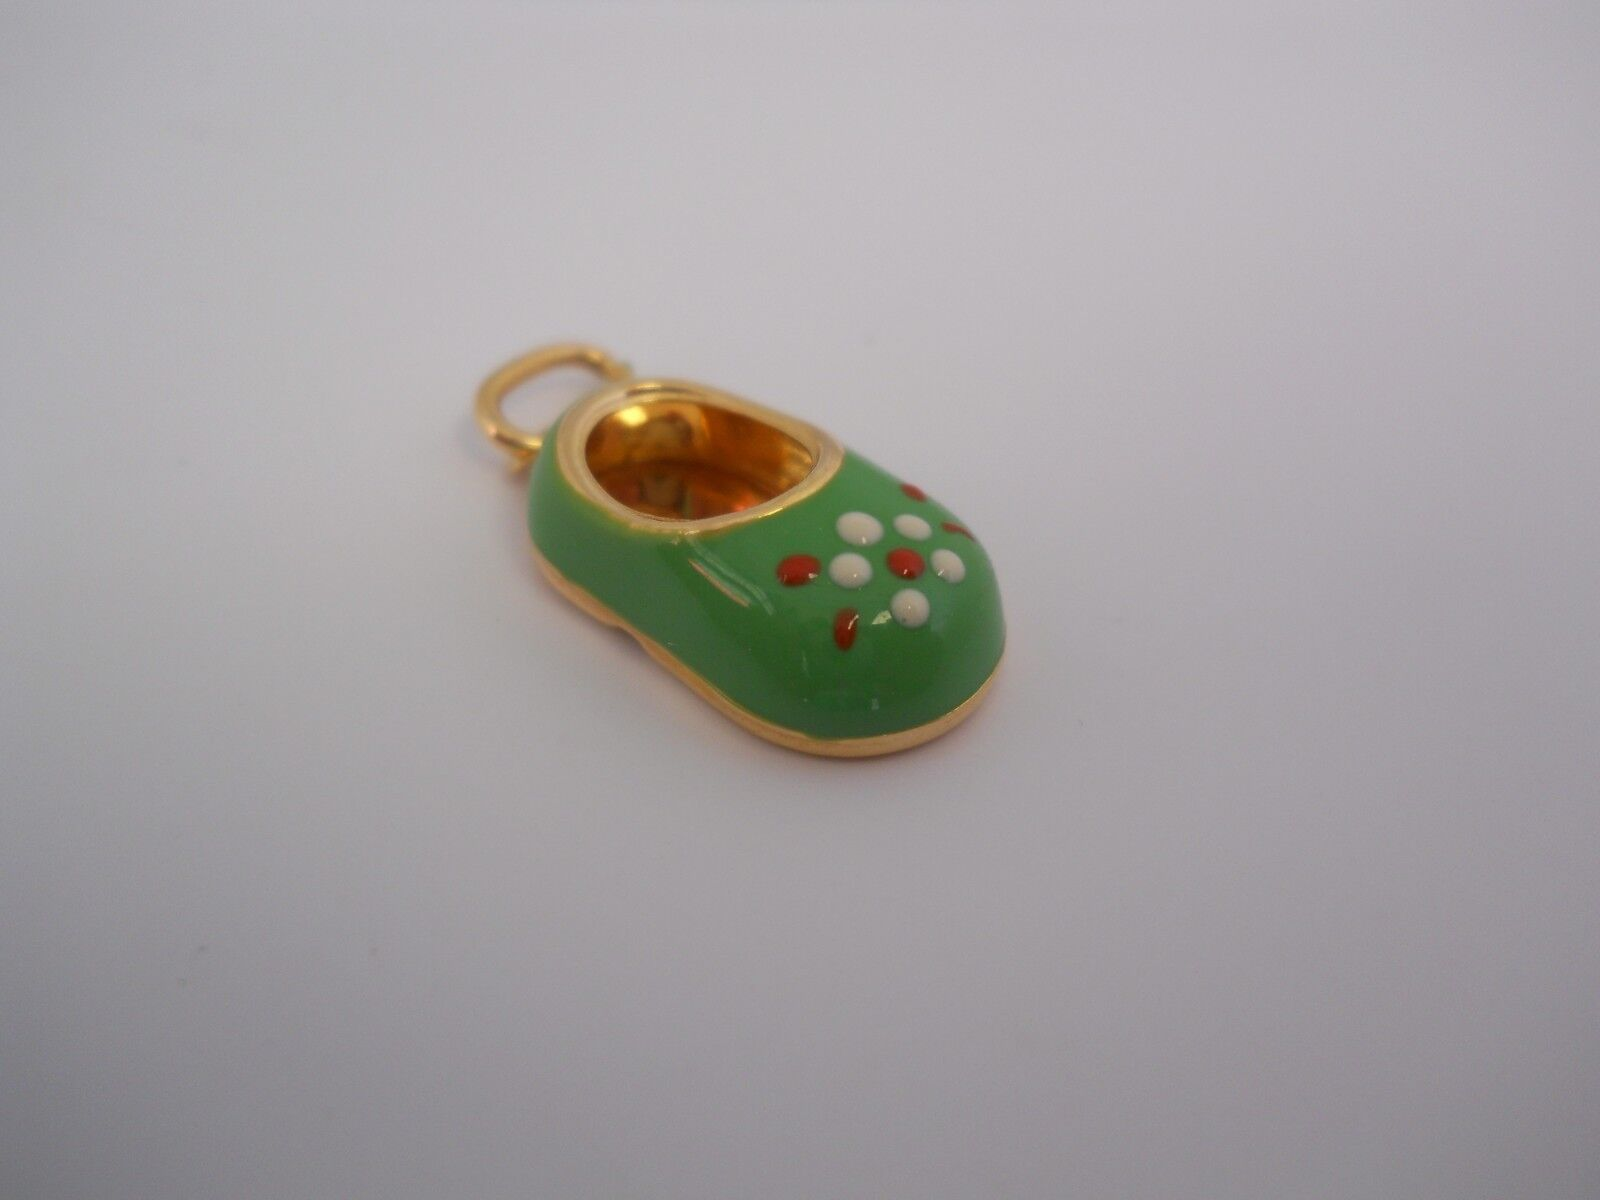 14K Yellow gold & Enameled Baby Bootie shoes Charm Pendant-Green W  Flower